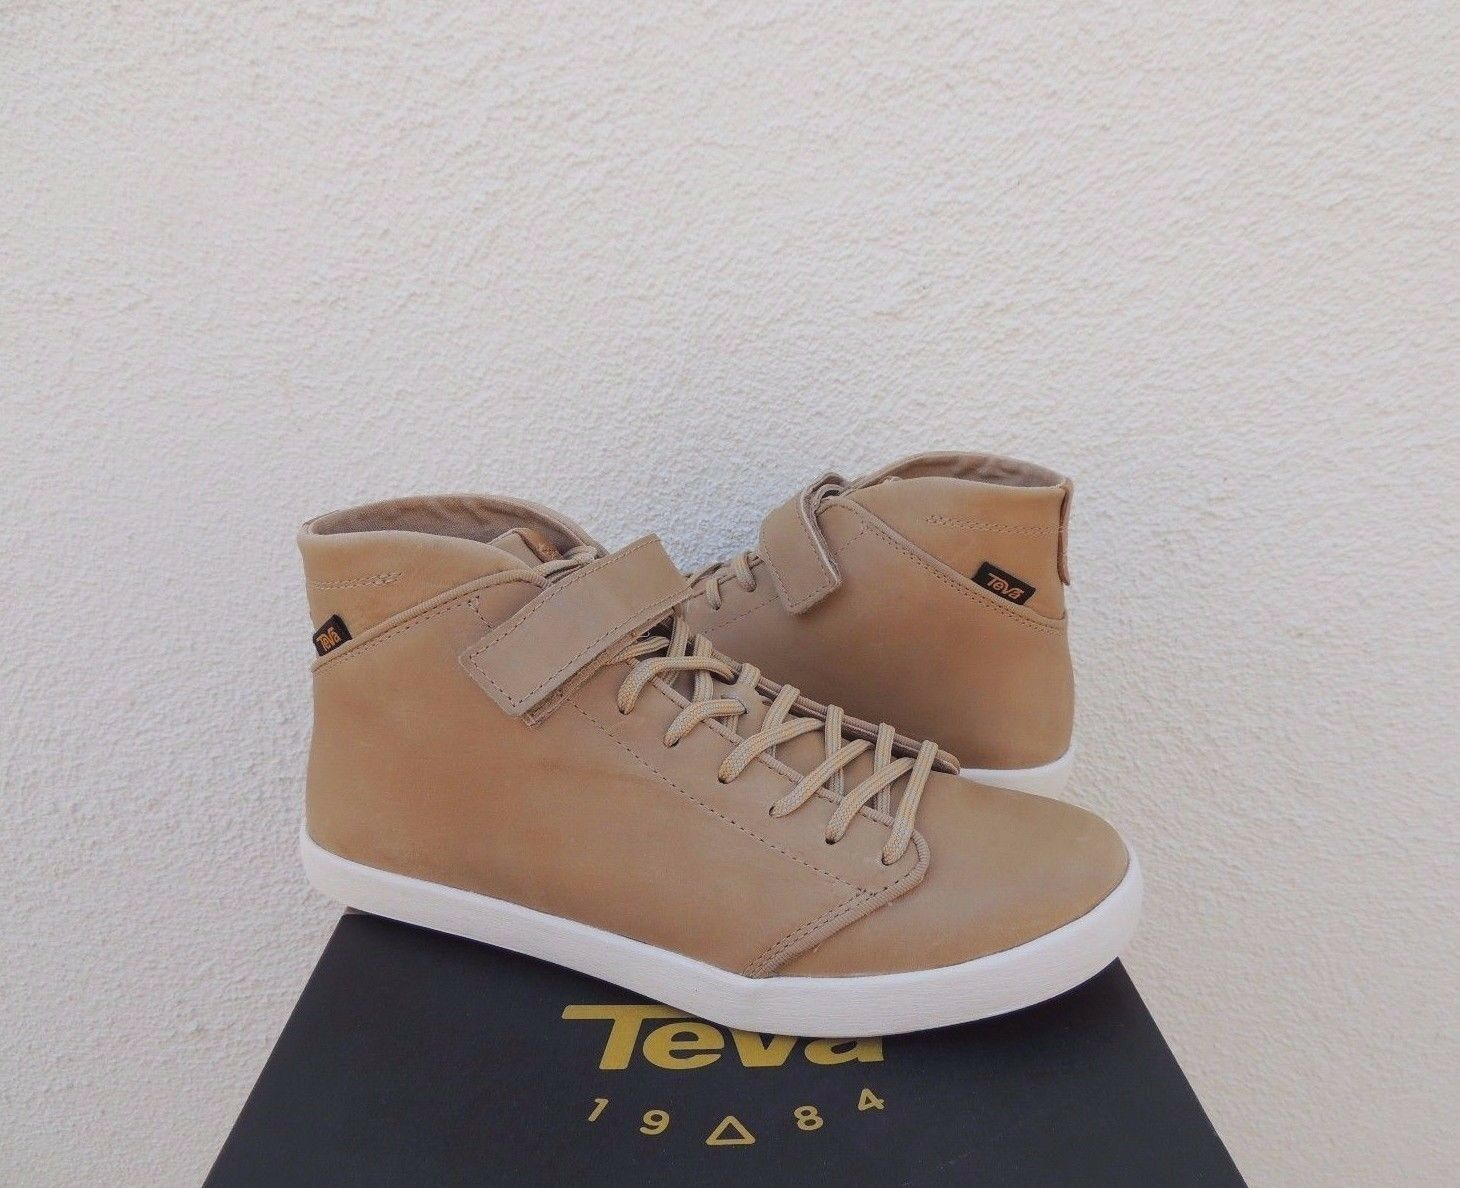 TEVA WILLOW CHUKKA TAN LEATHER SNEAKER ANKLE Stiefel, 8/ WOMEN US 8/ Stiefel, EUR 39 NIB f3e71e